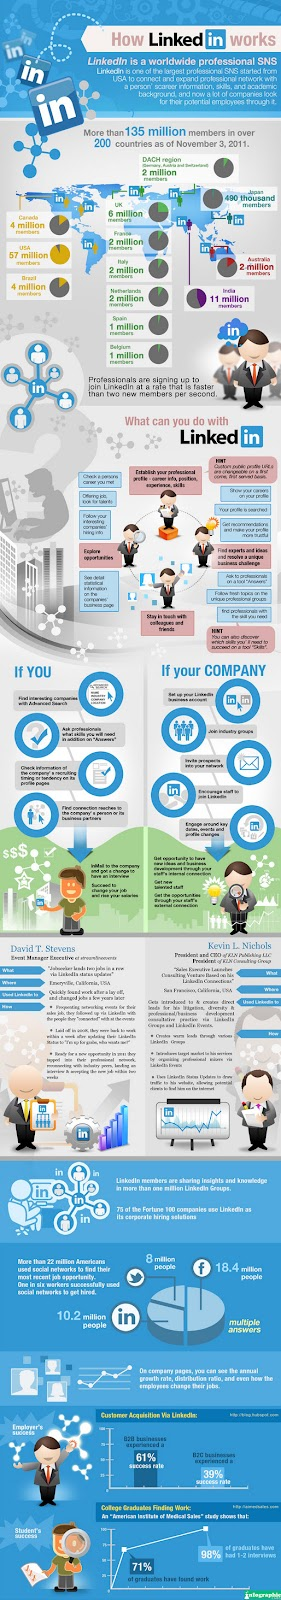 infographic on Linkedin